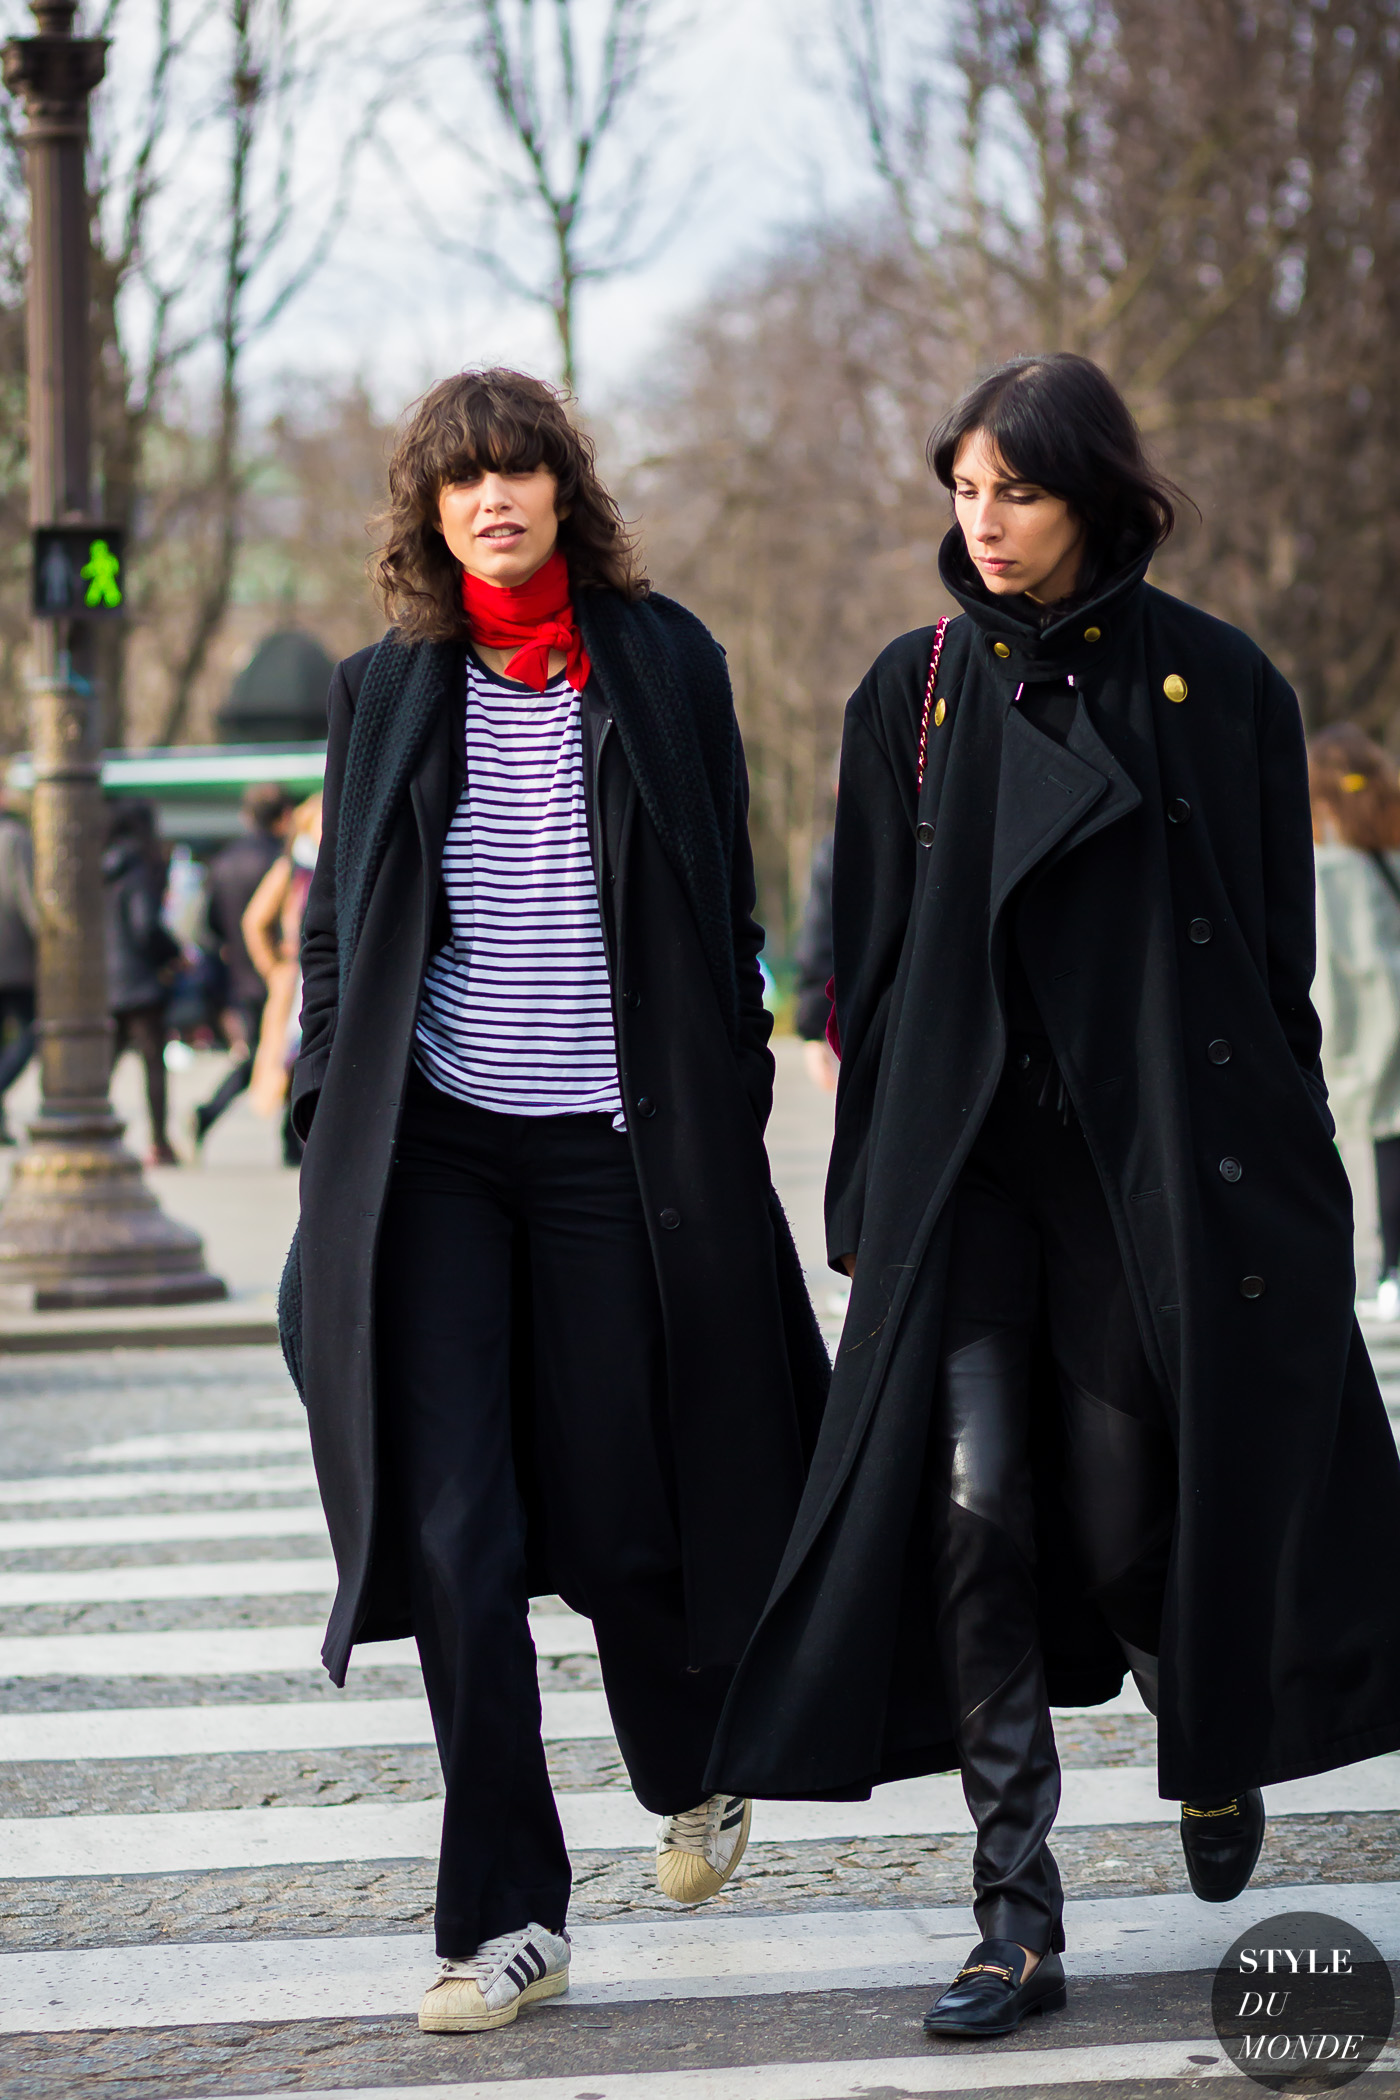 Mica Arganaraz and Jamie Bochert Street Style Street Fashion Streetsnaps by STYLEDUMONDE Street Style Fashion Photography